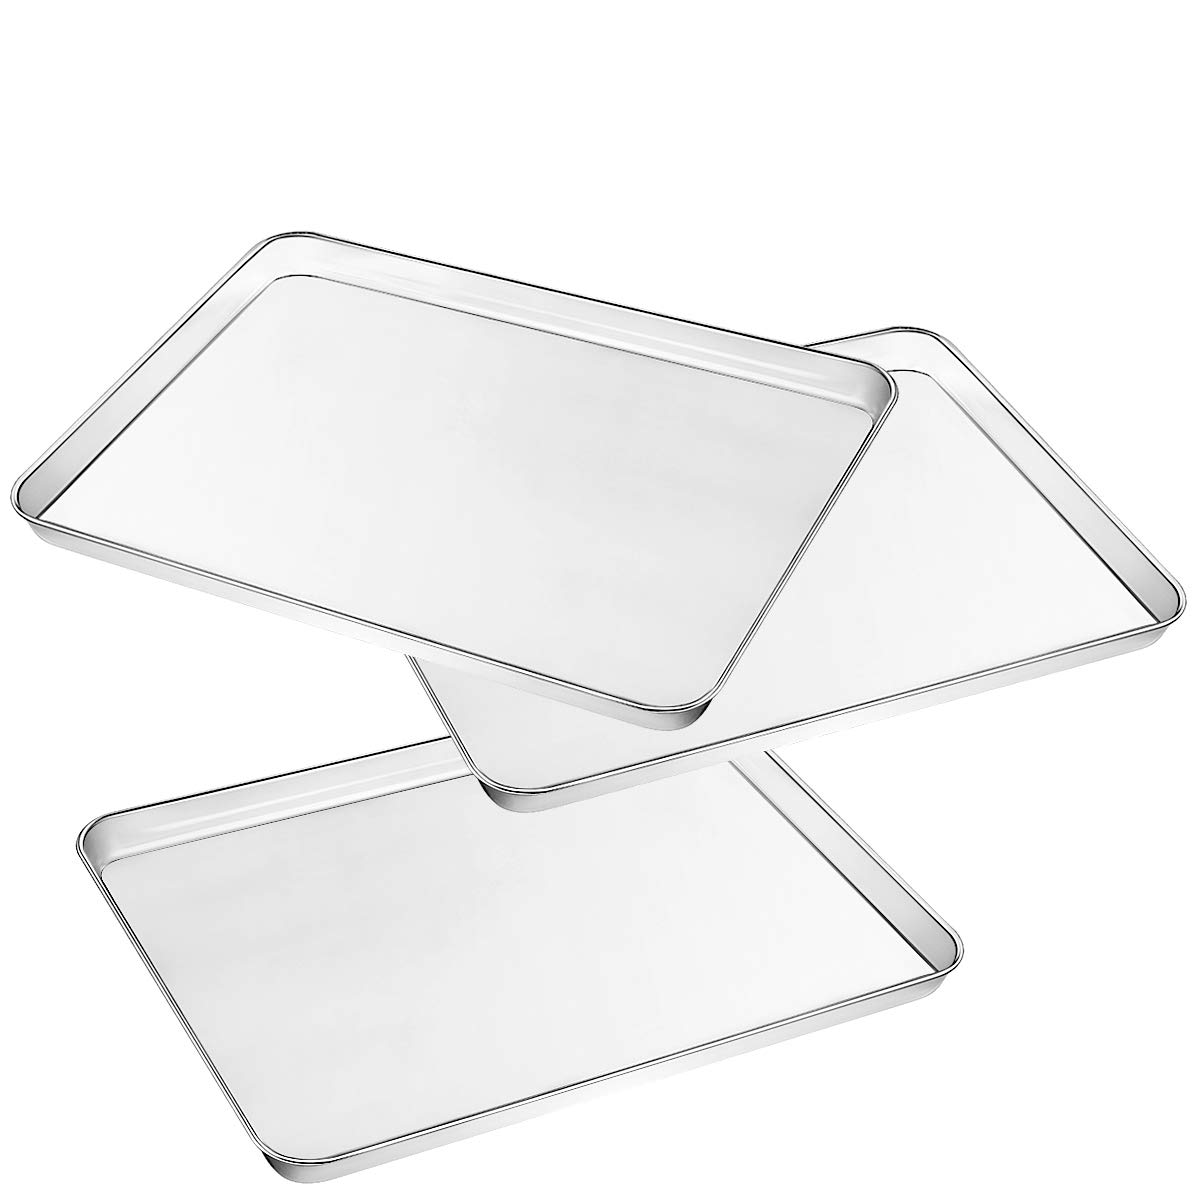 Umite Chef Baking Sheet Pan for Toaster Oven, Stainless Steel Baking Pans Small Metal Cookie Sheets, Superior Mirror Finish Easy Clean, Dishwasher Safe, 3 Pieces/Set (16 x 12 x 1 inch)